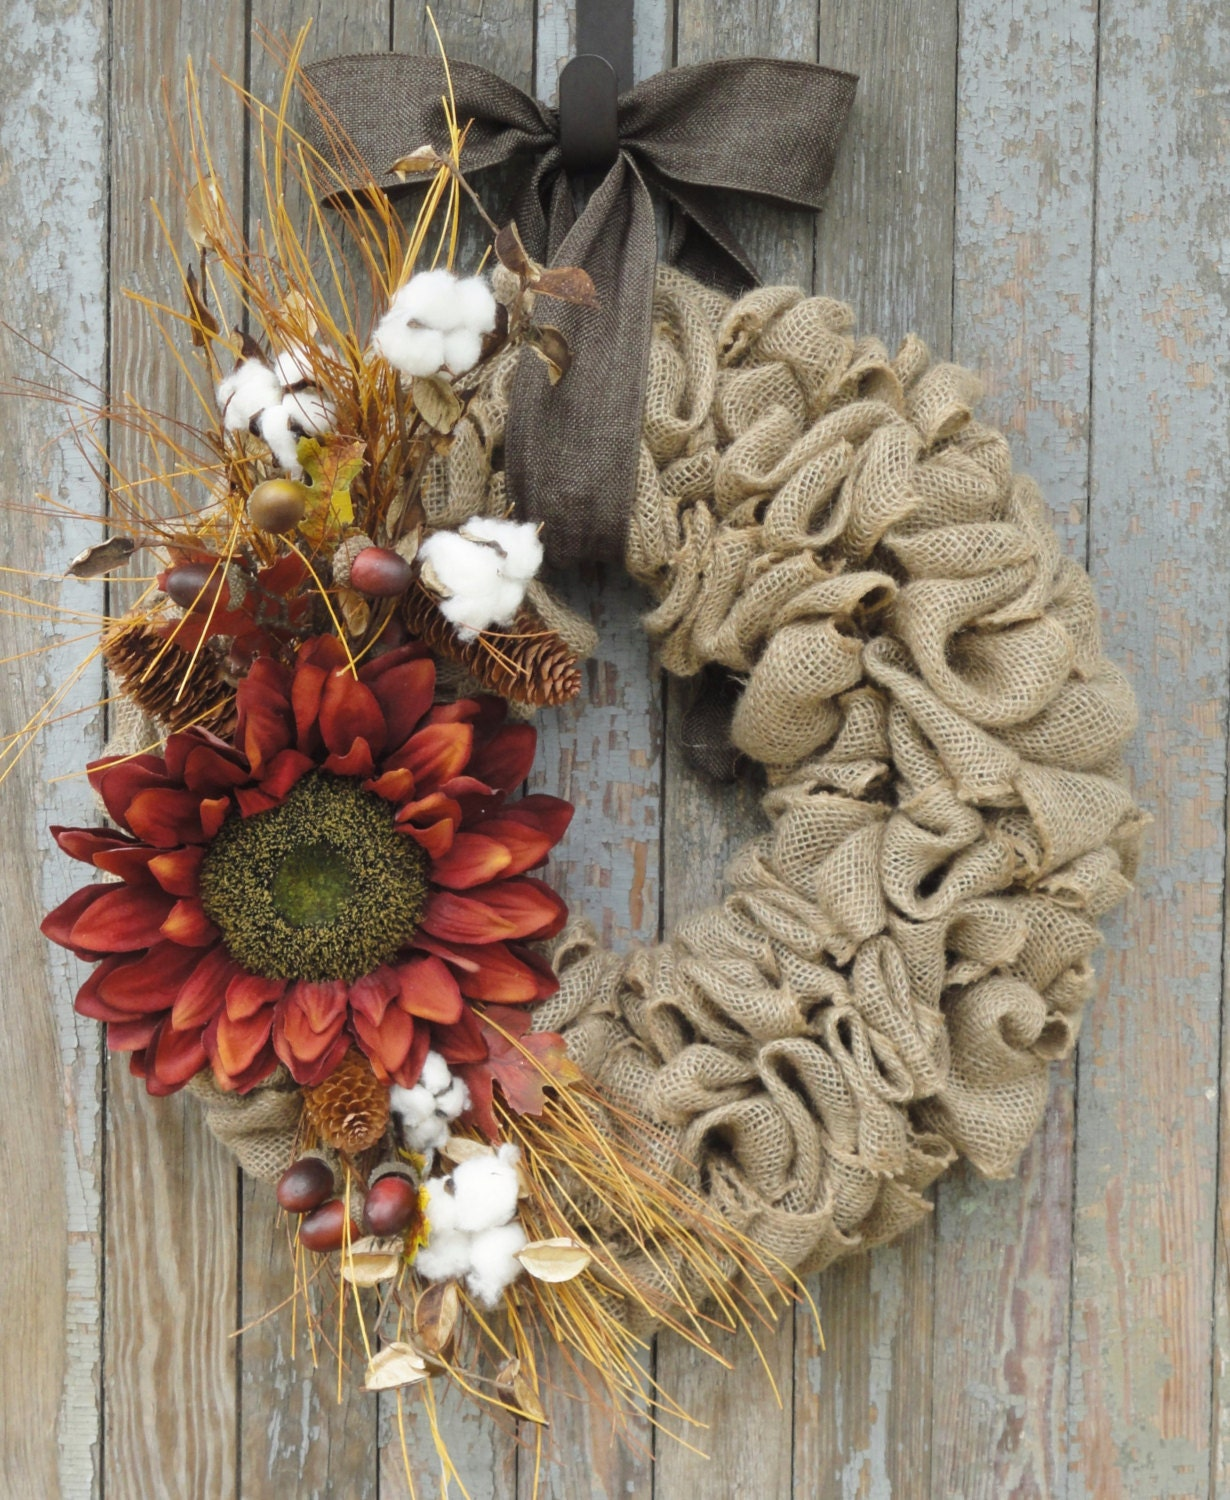 Fall Sunflower Wreath Fall Burlap Wreath Sunflower Grapevine